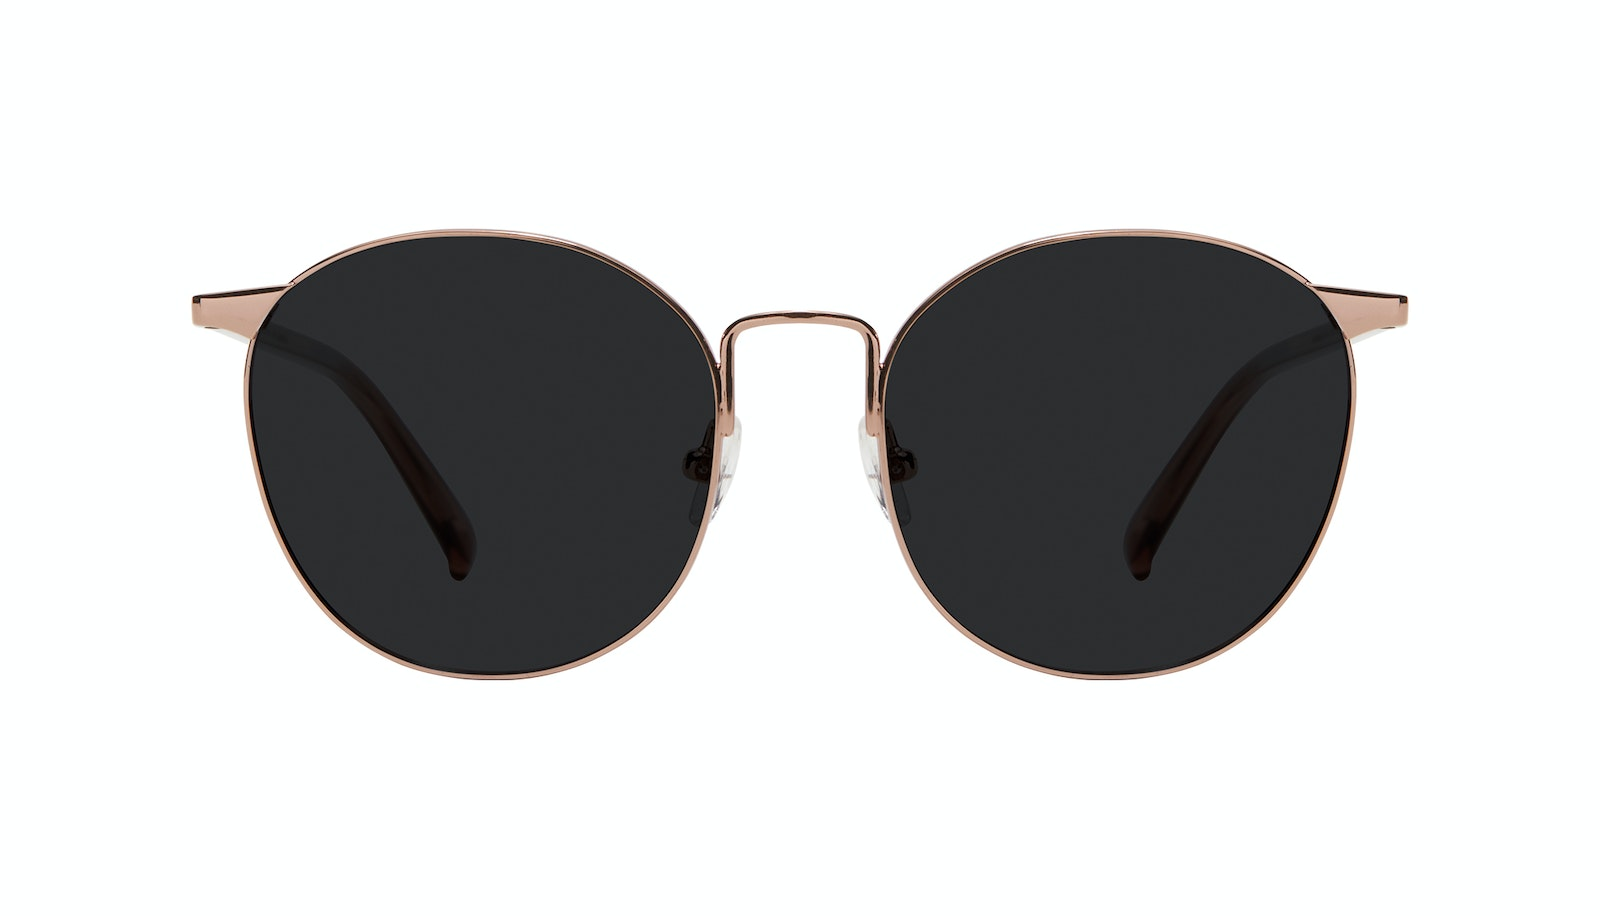 Affordable Fashion Glasses Round Sunglasses Women Romy Crepuscule